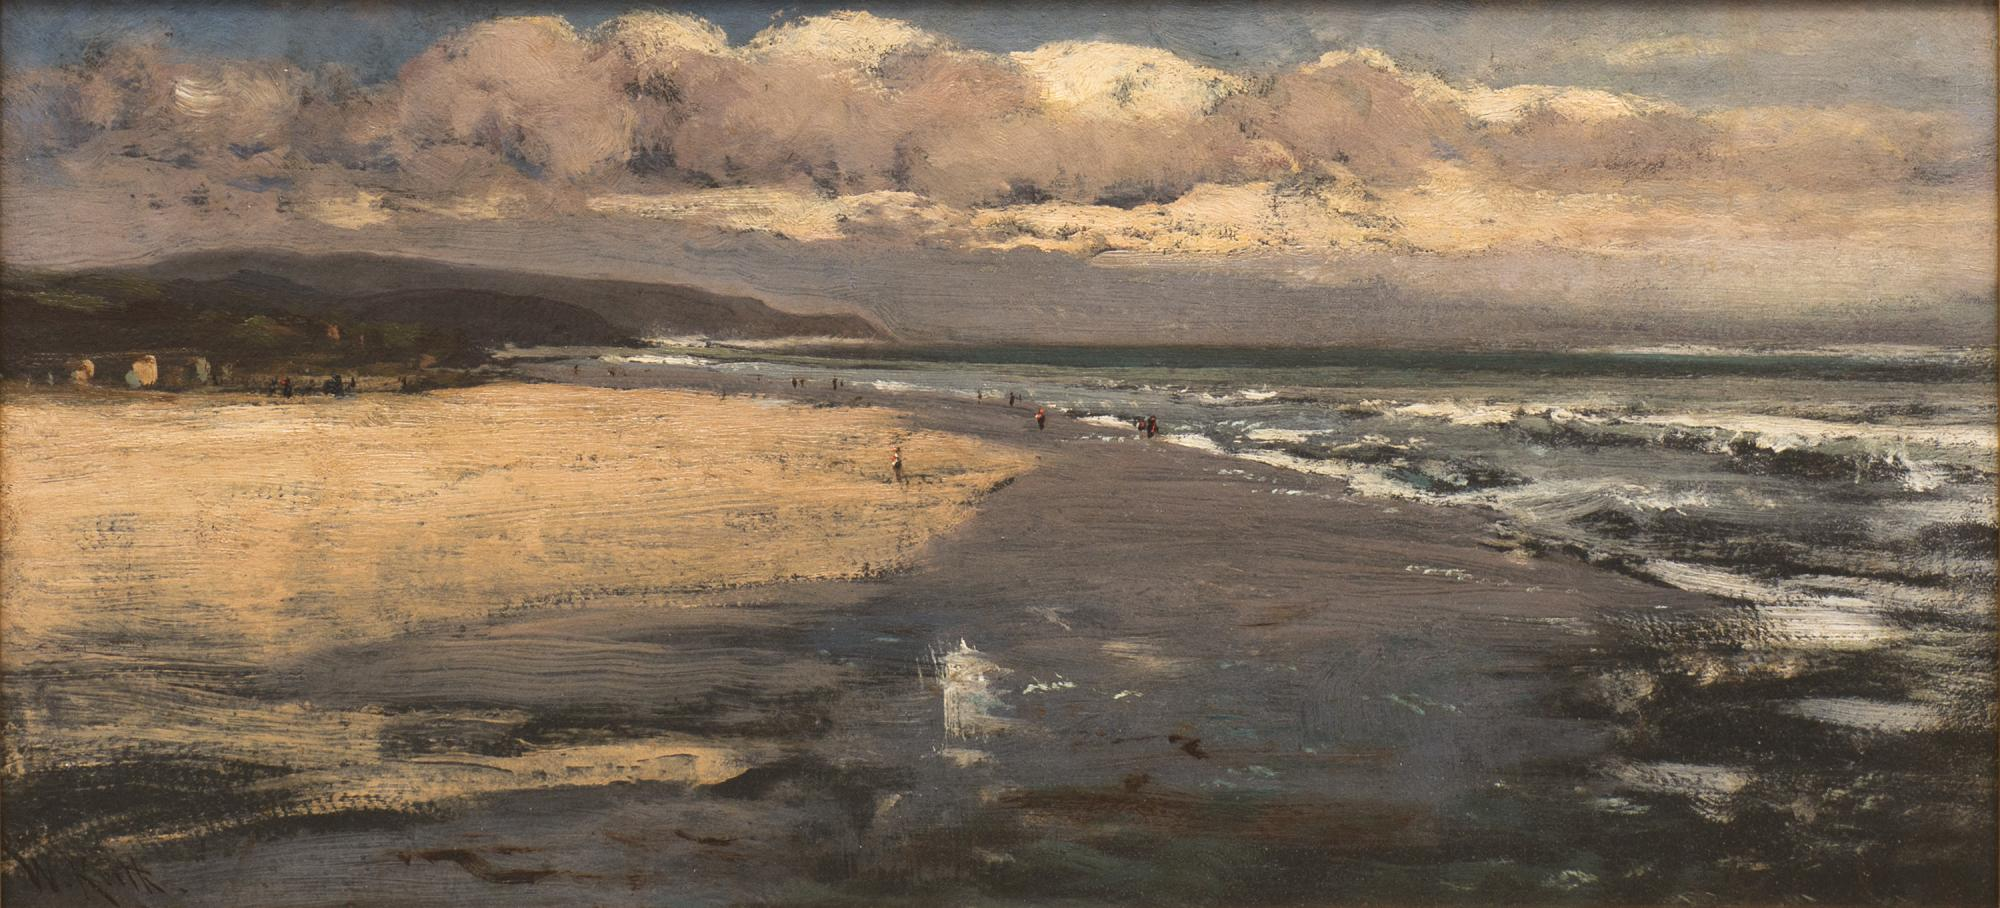 William Keith,